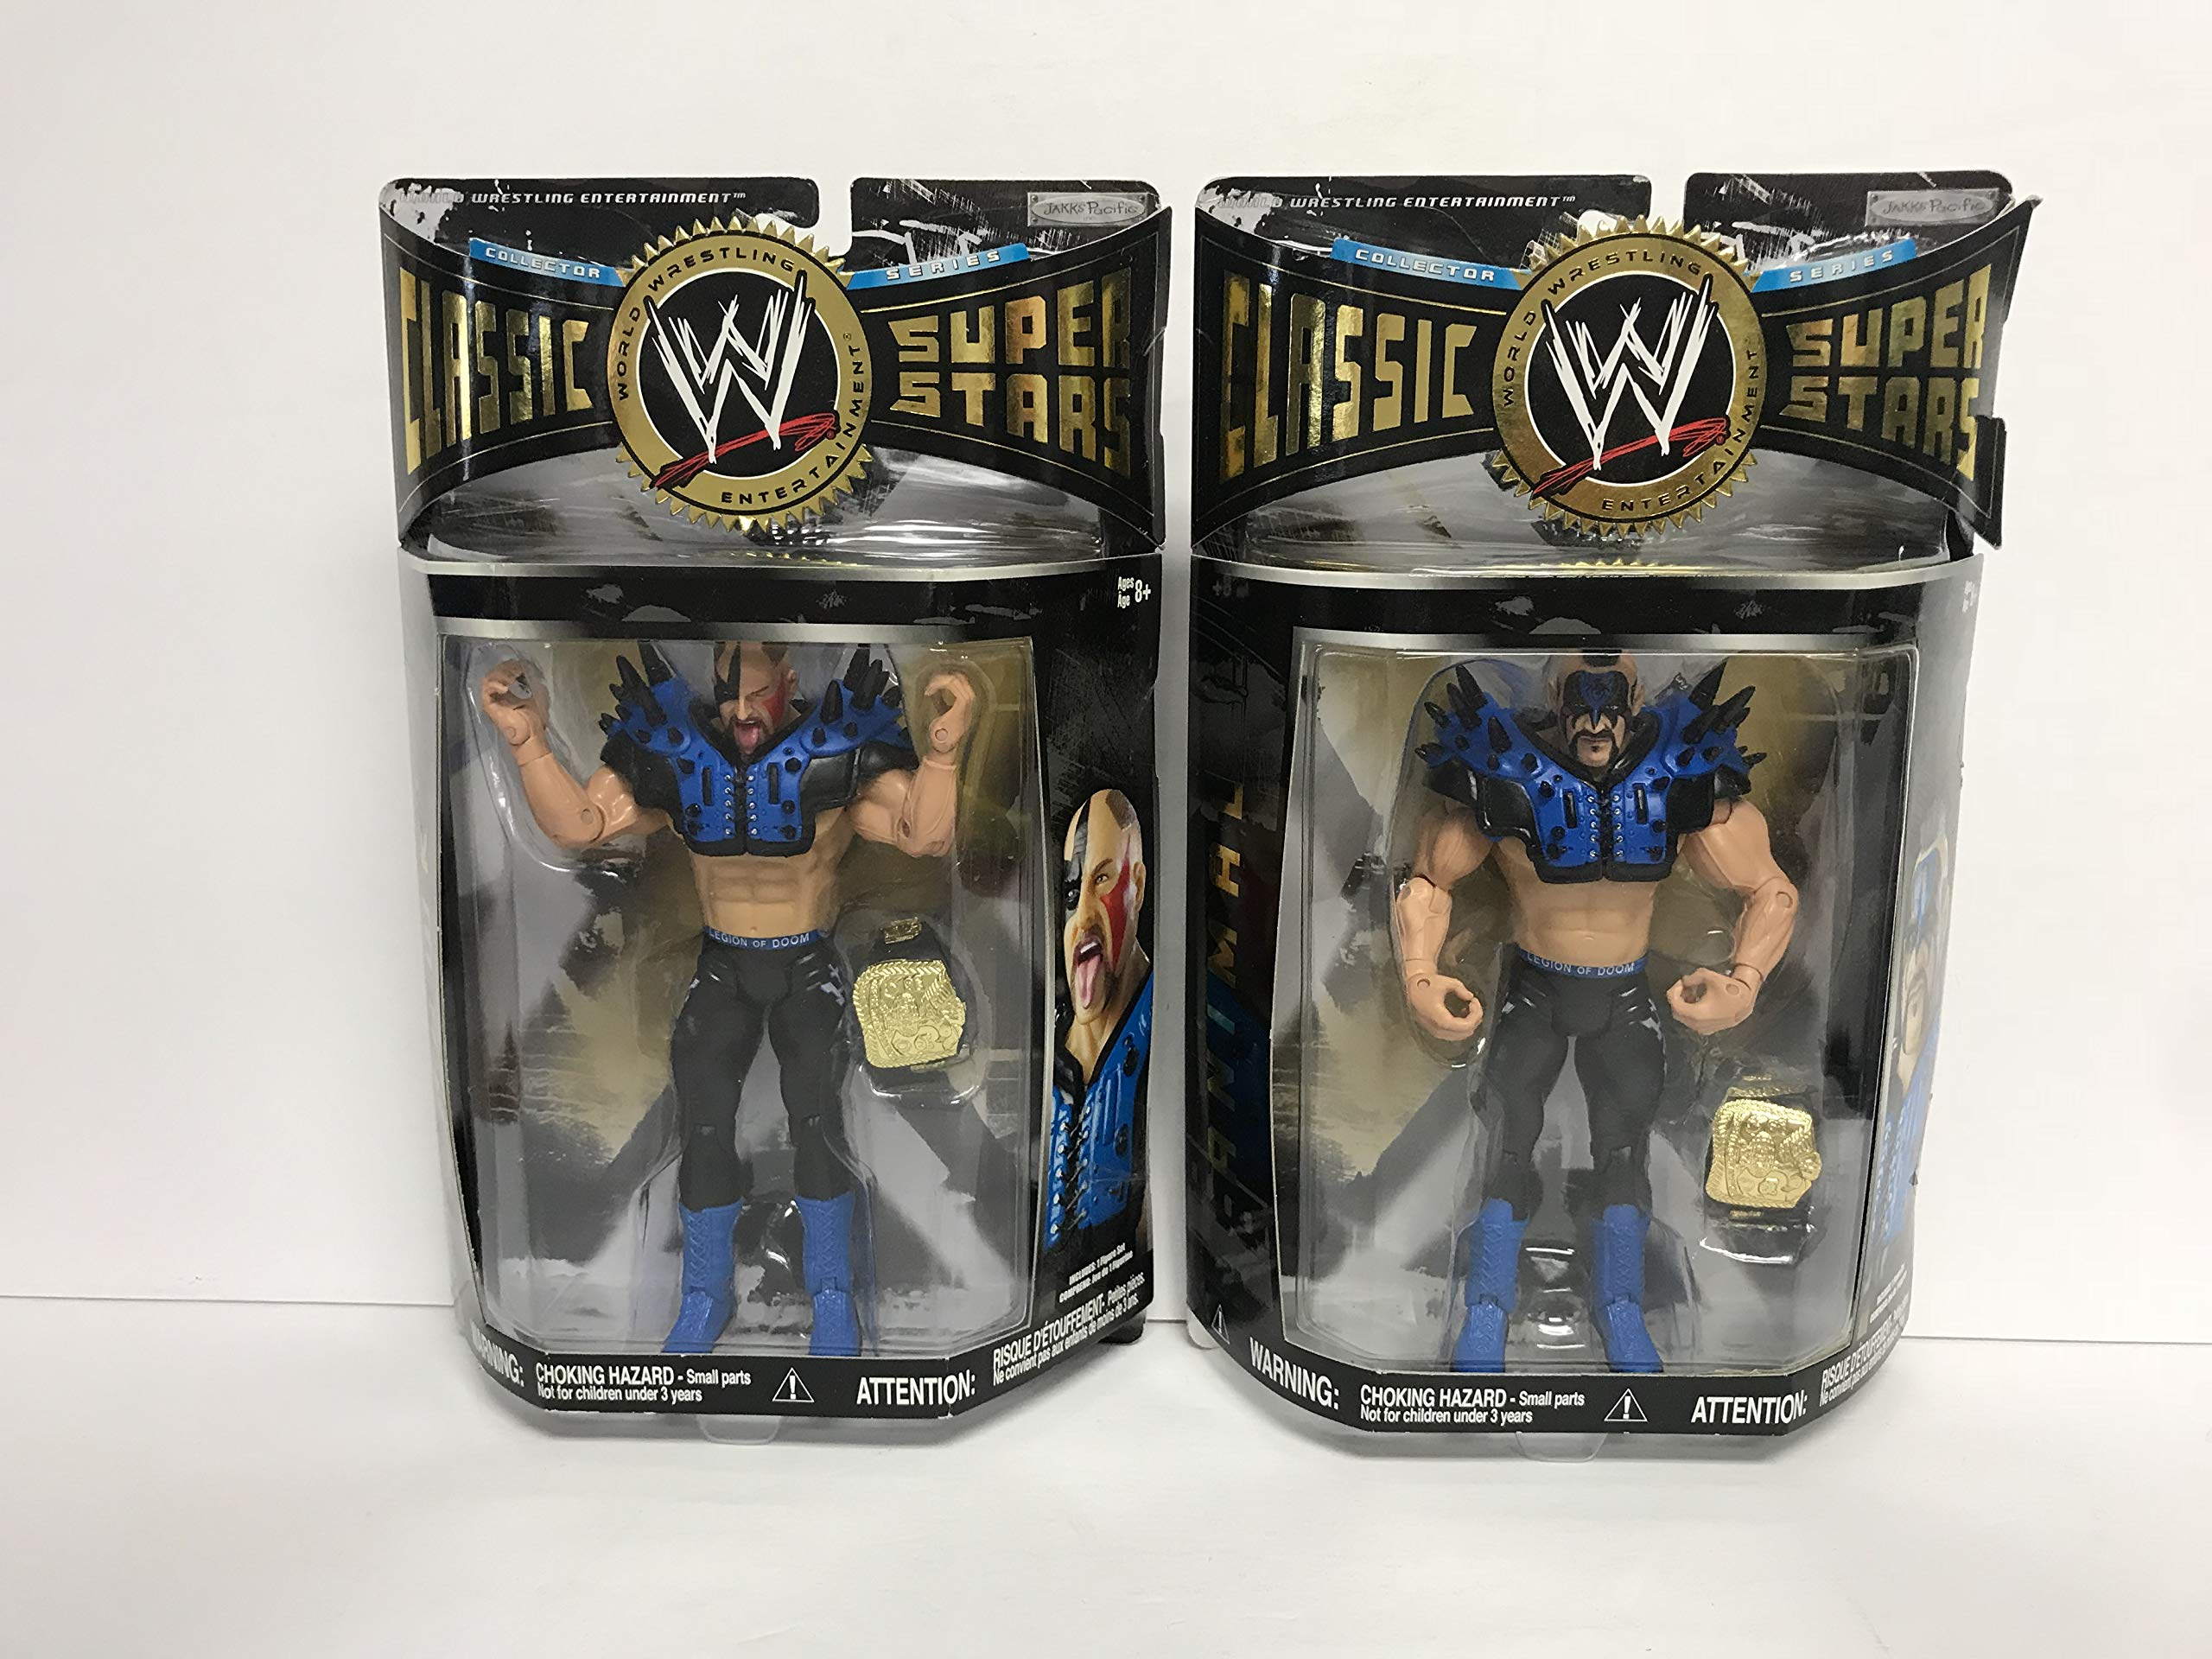 HAWK & ANIMAL Legion of Doom WWE Classic Superstars action figures with belts